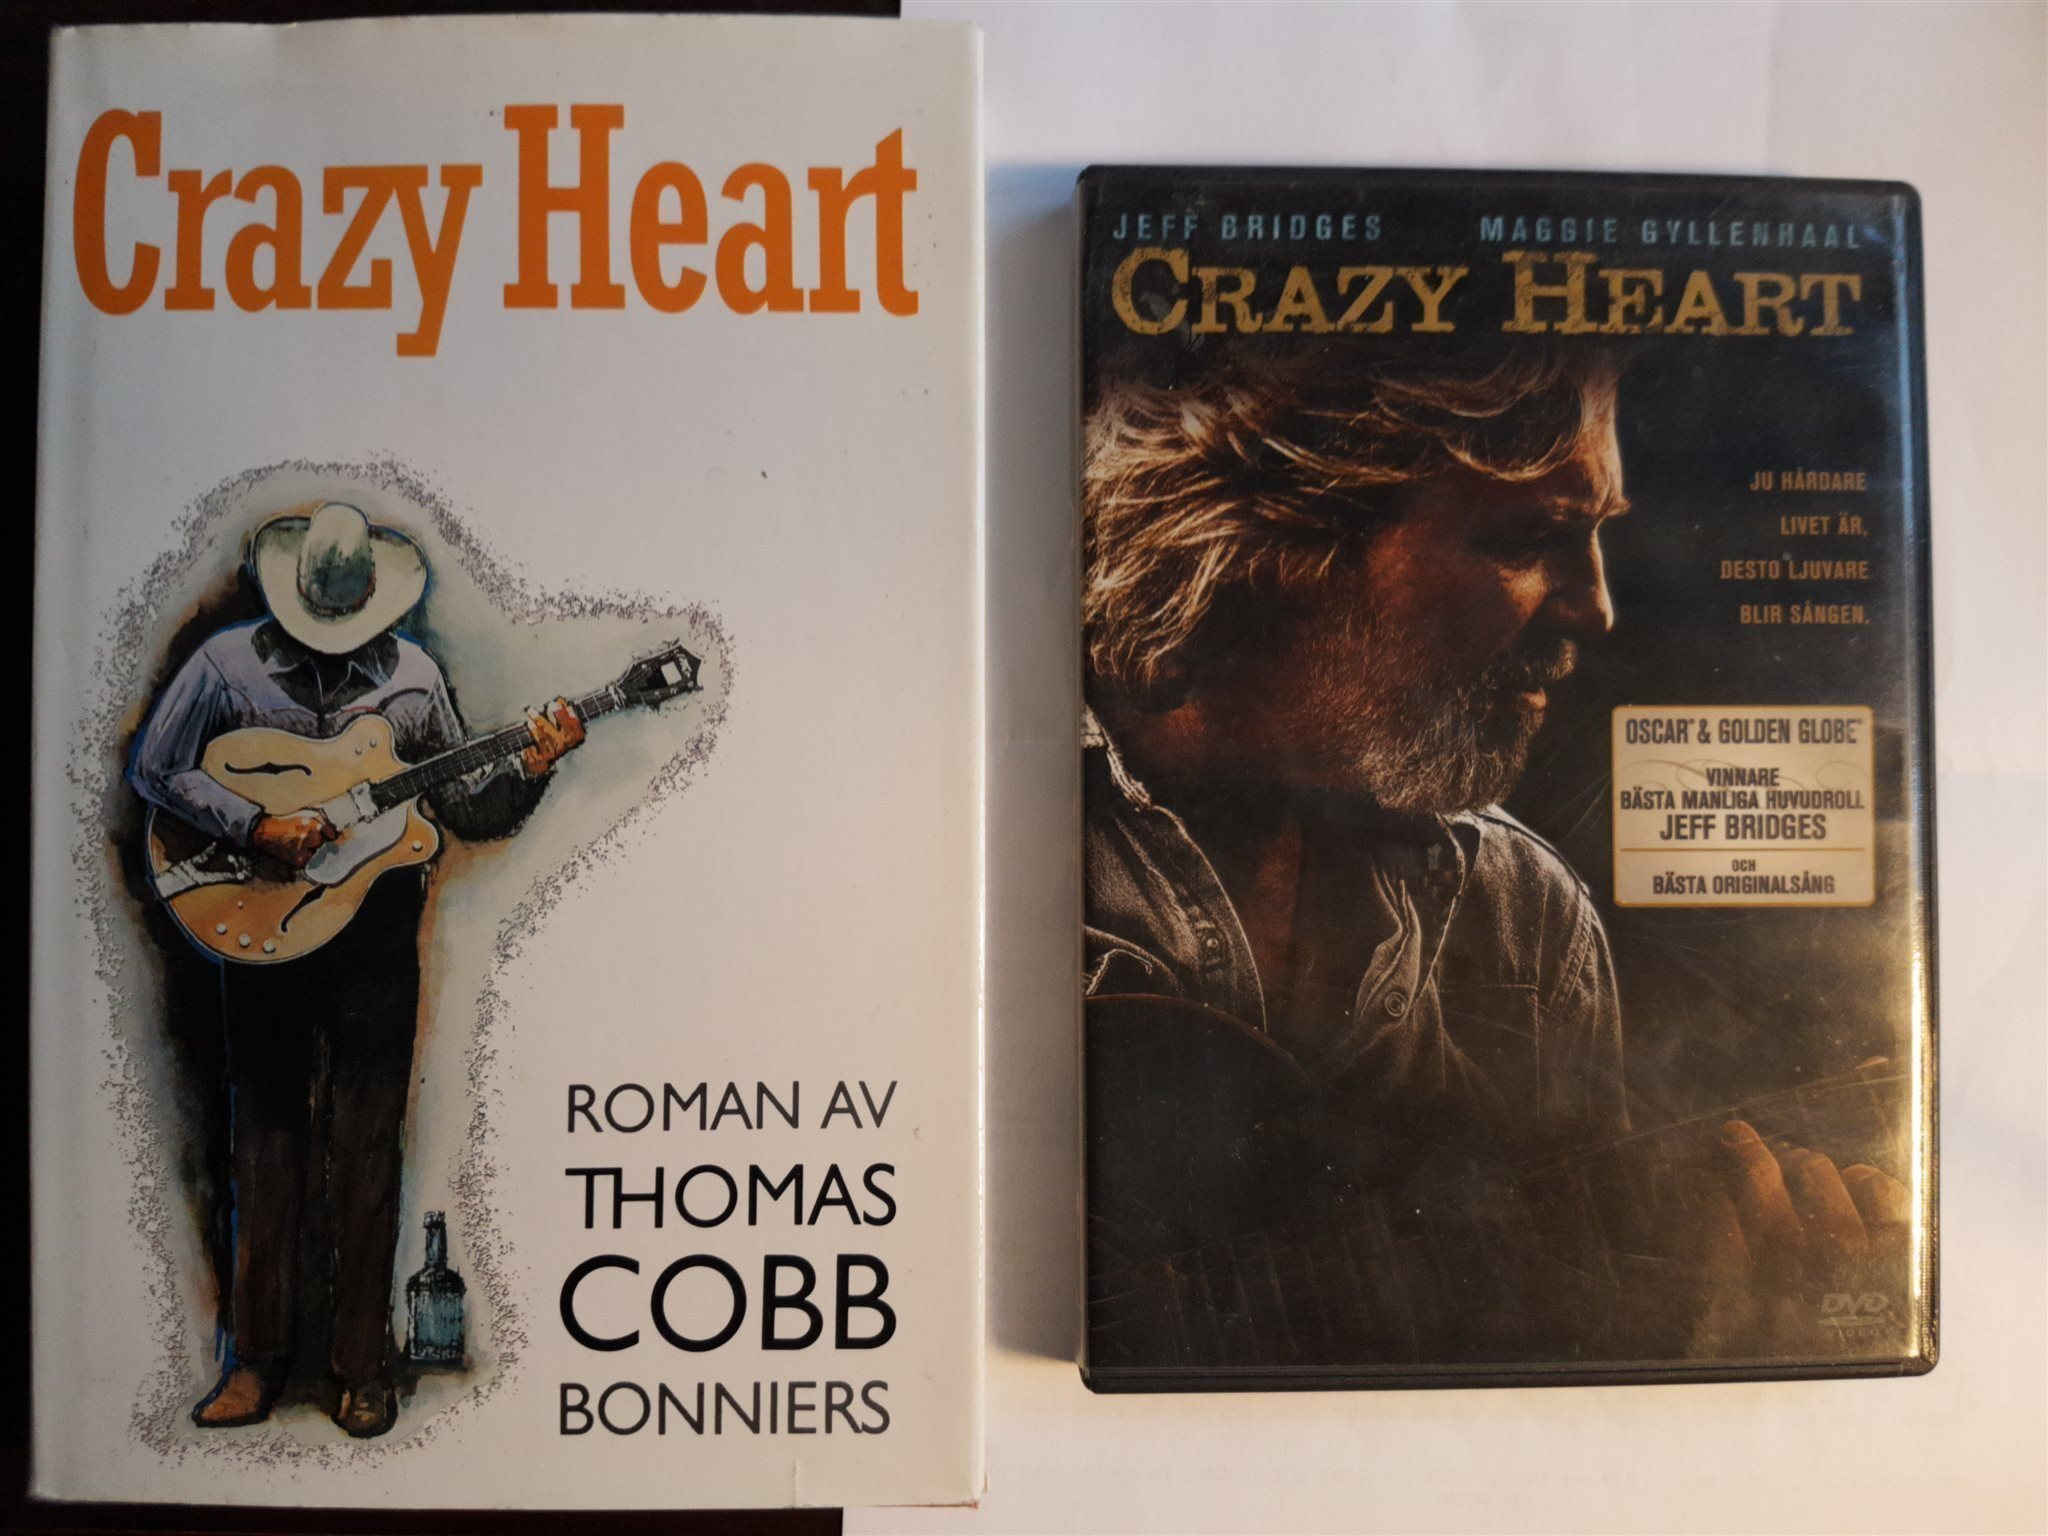 LOT - CRAZY HEART: DVD-filmen + Romanen Crazy Heart av Thomas Cobb